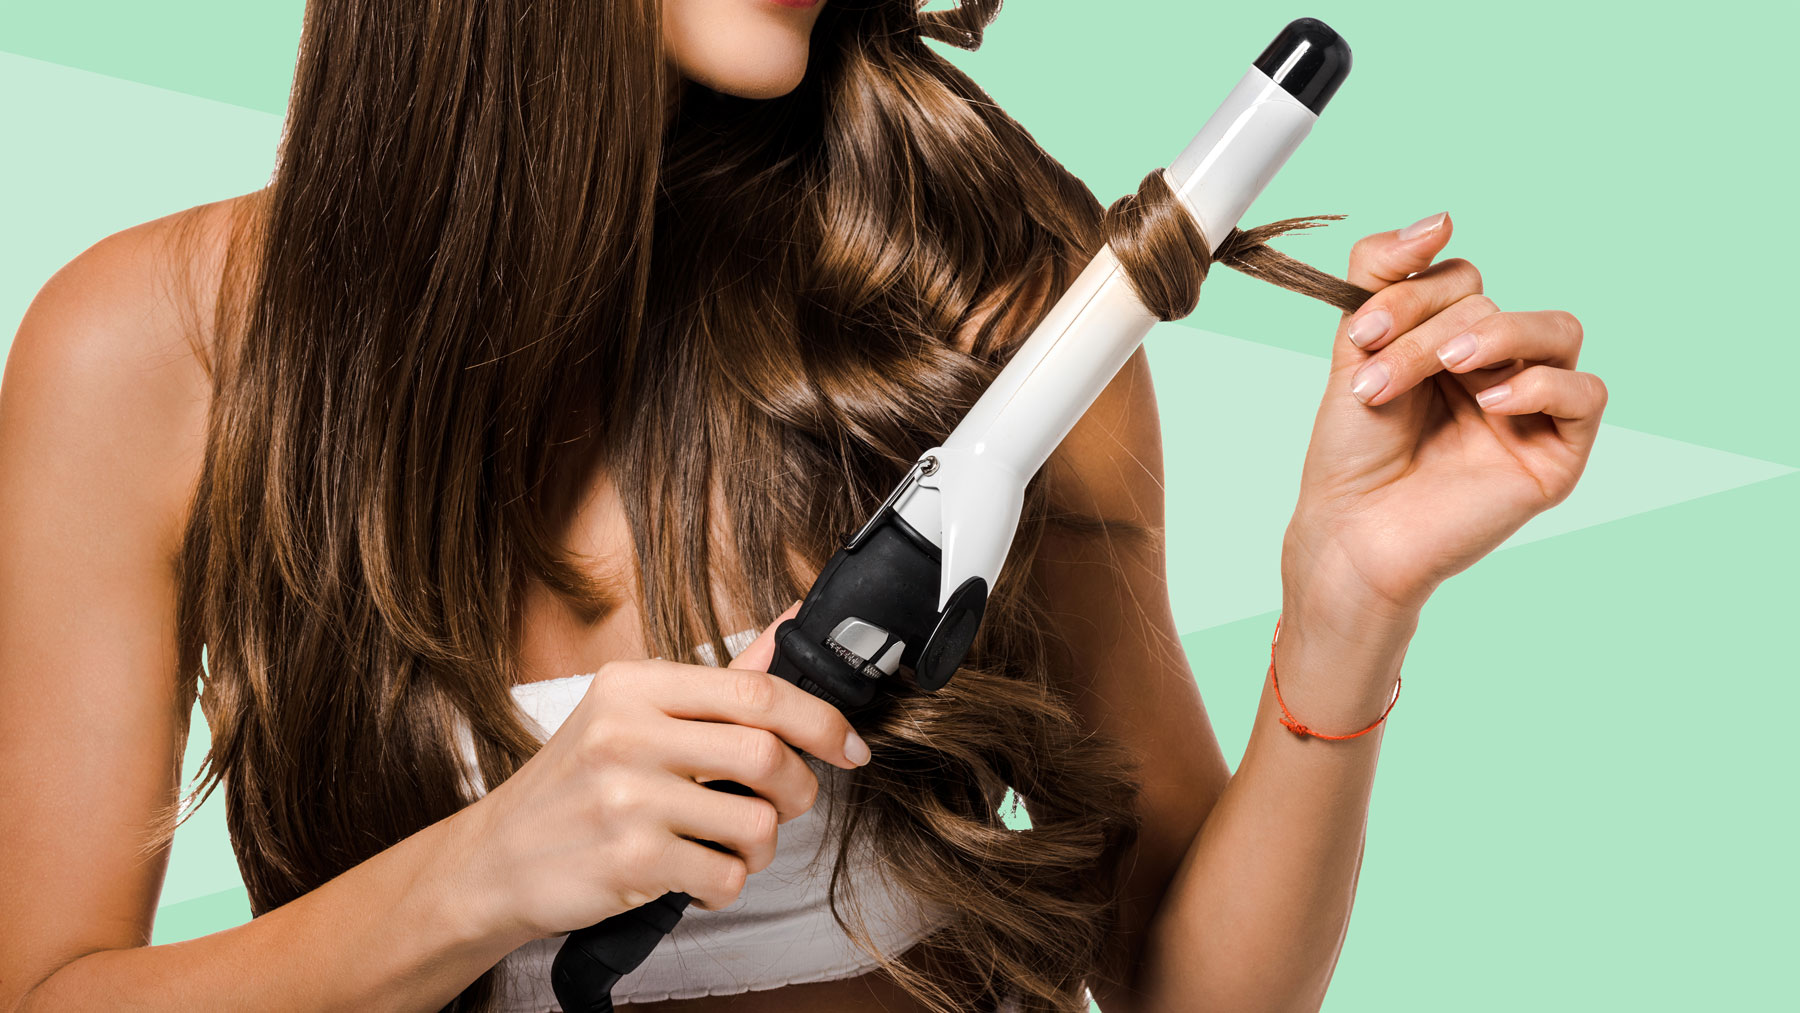 How to Clean a Curling Iron: Steps and Ingredients for Cleaning a Curling Iron at Home (Women using curling iron)